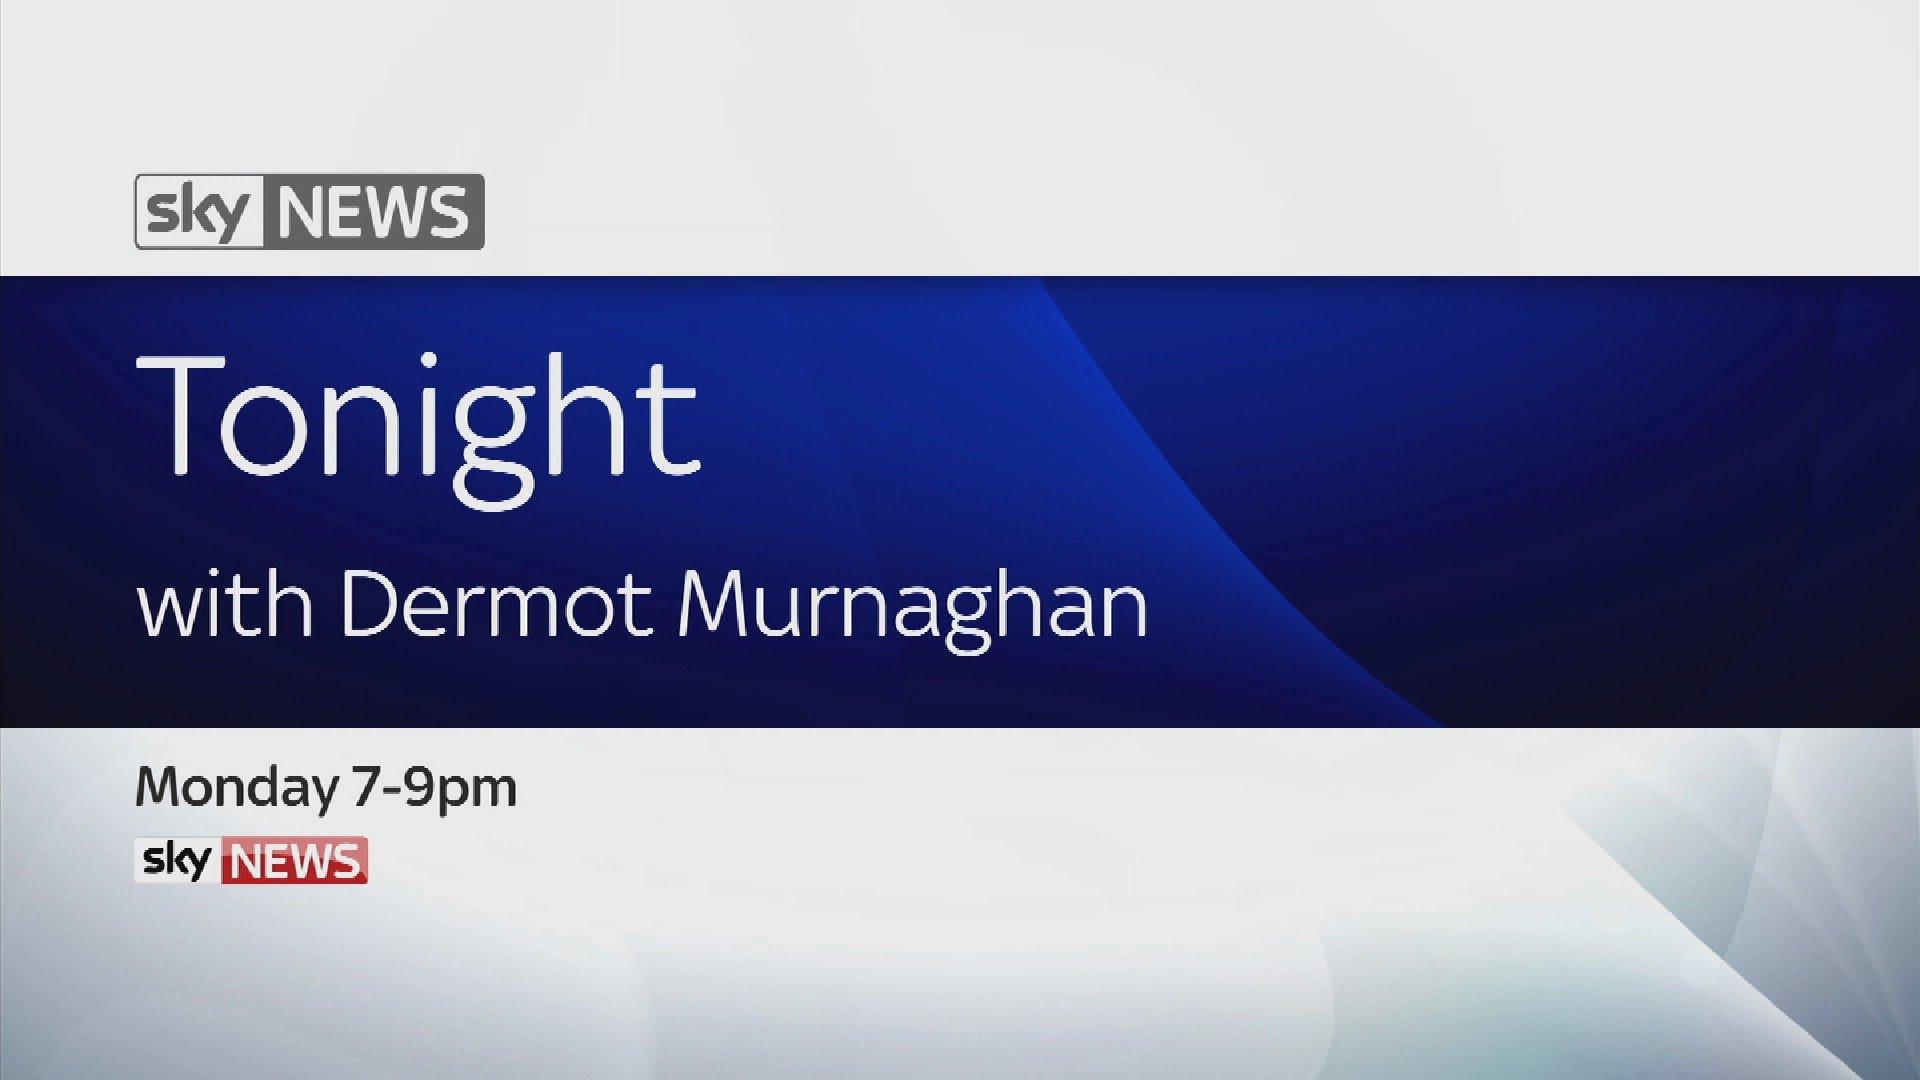 Sky News Tonight With Dermot Murnaghan 9